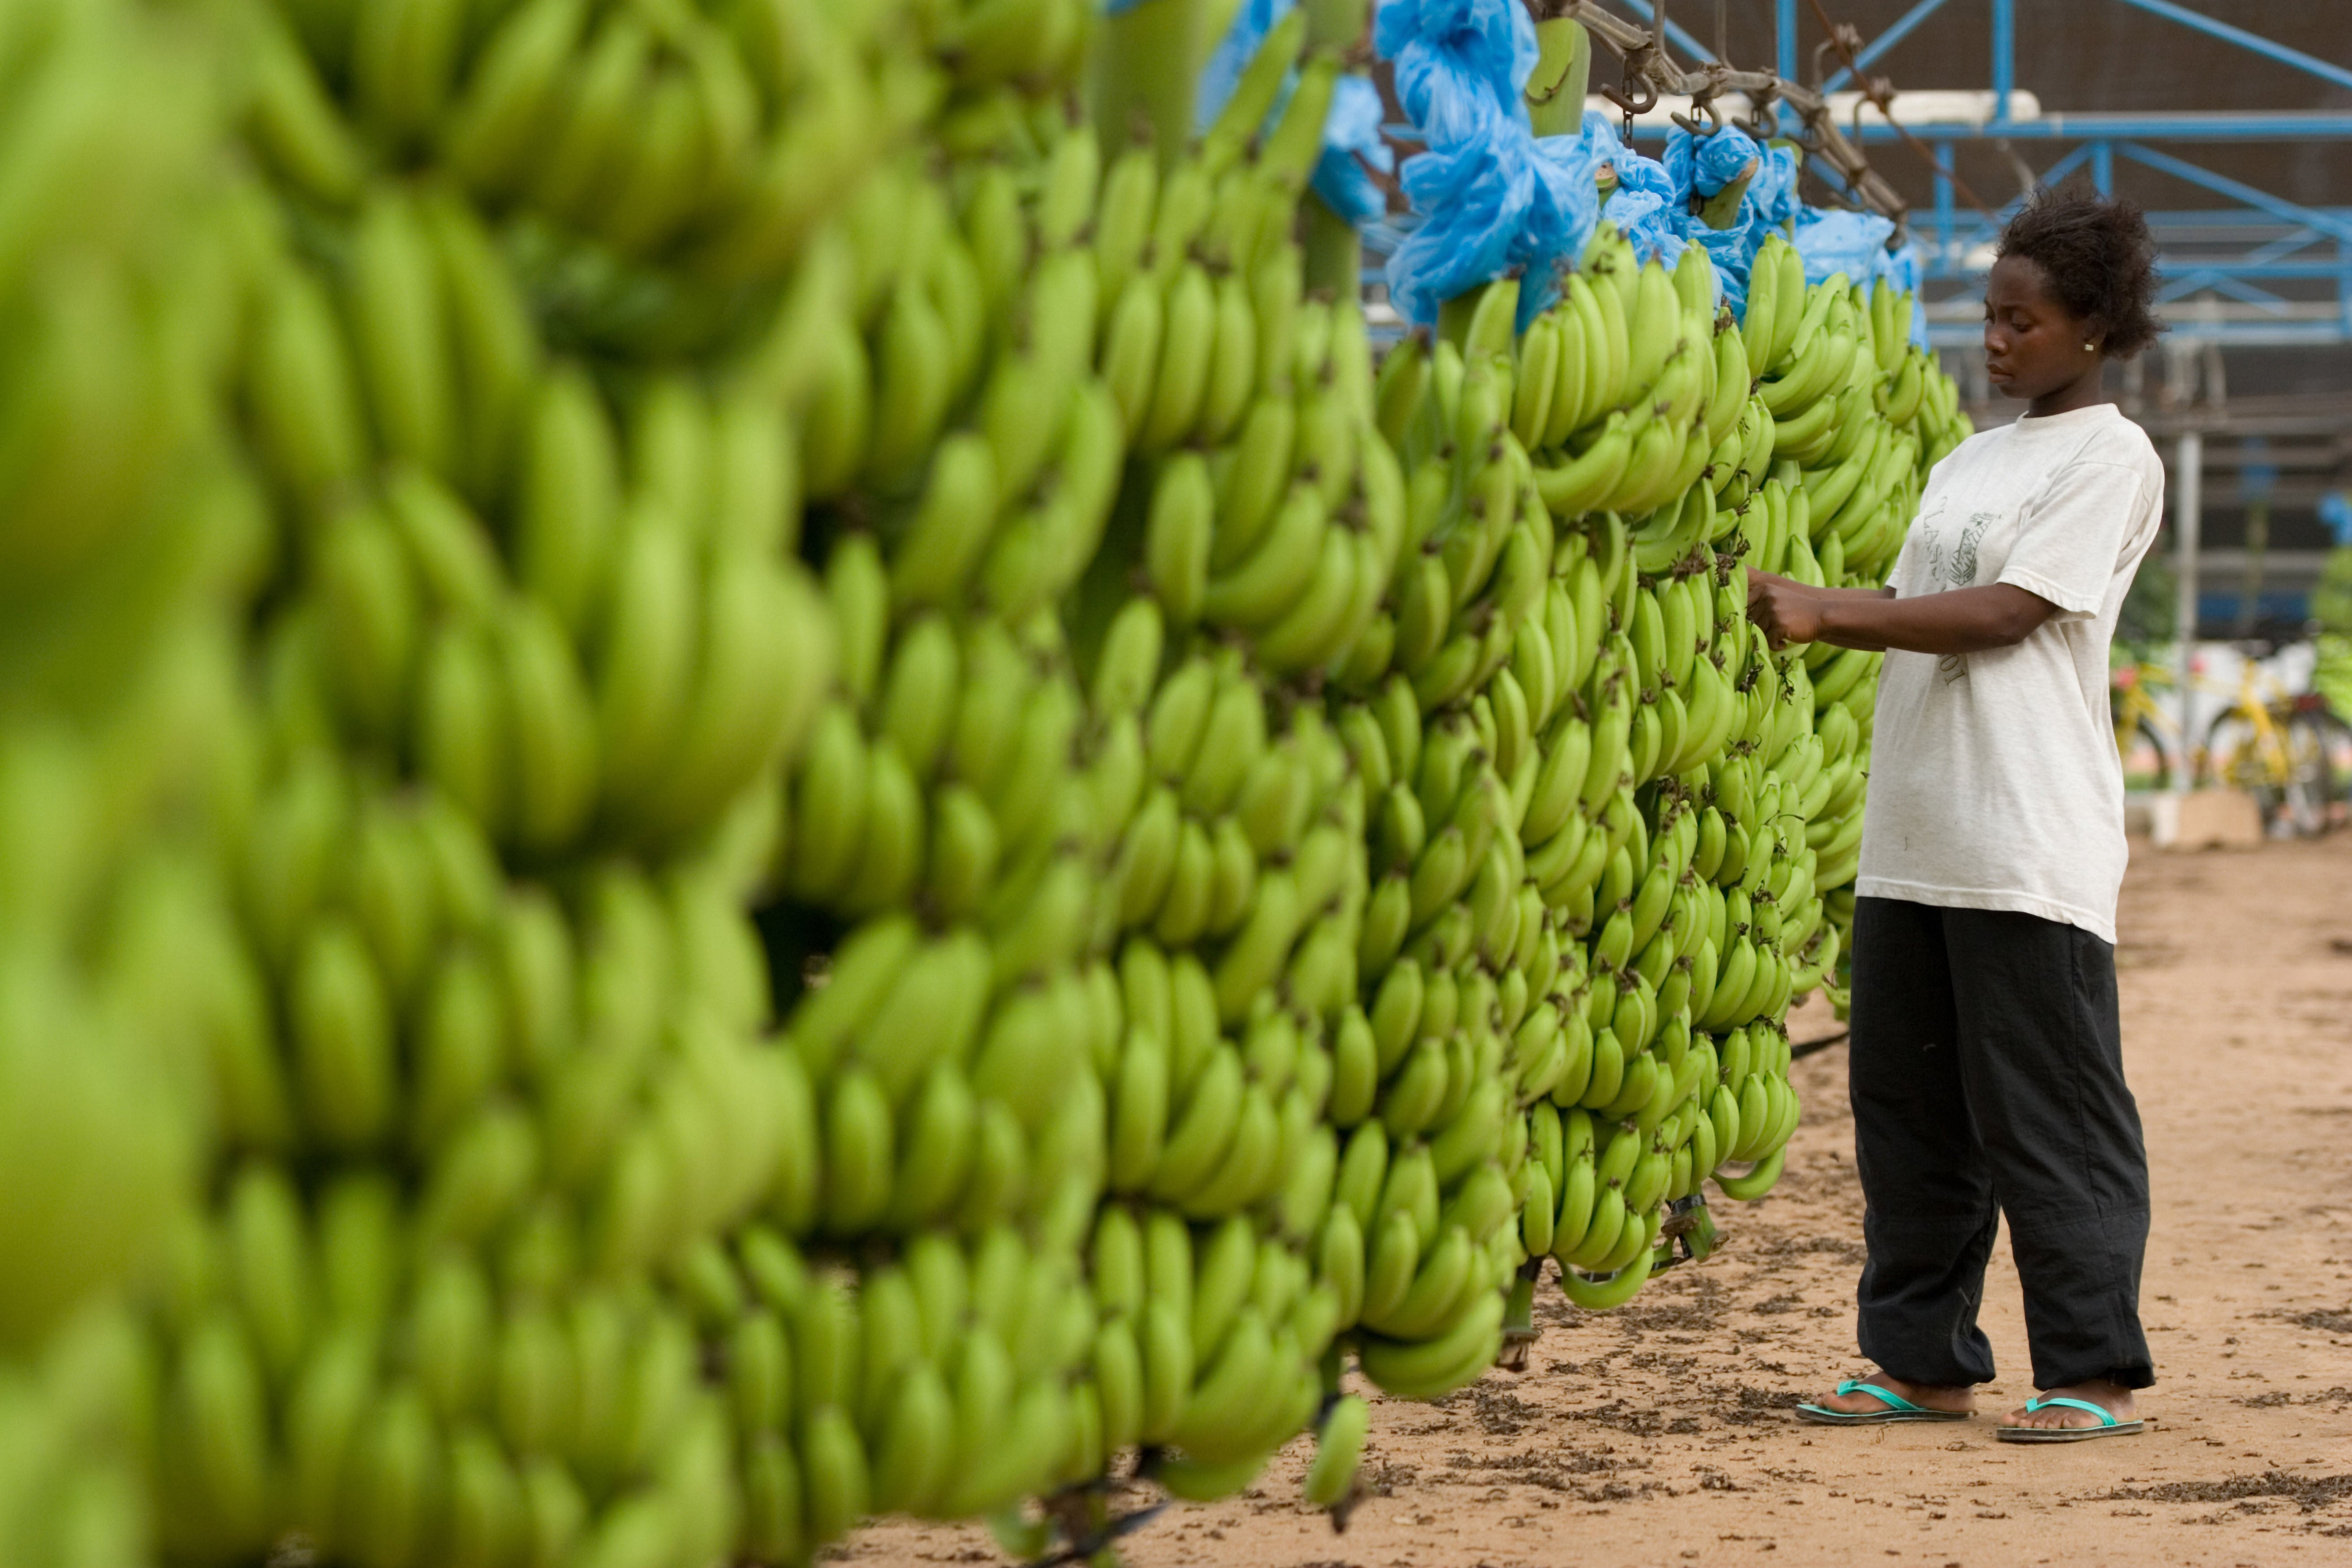 Brexit tariffs totalling £100,000 slapped on Fairtrade bananas from Africa